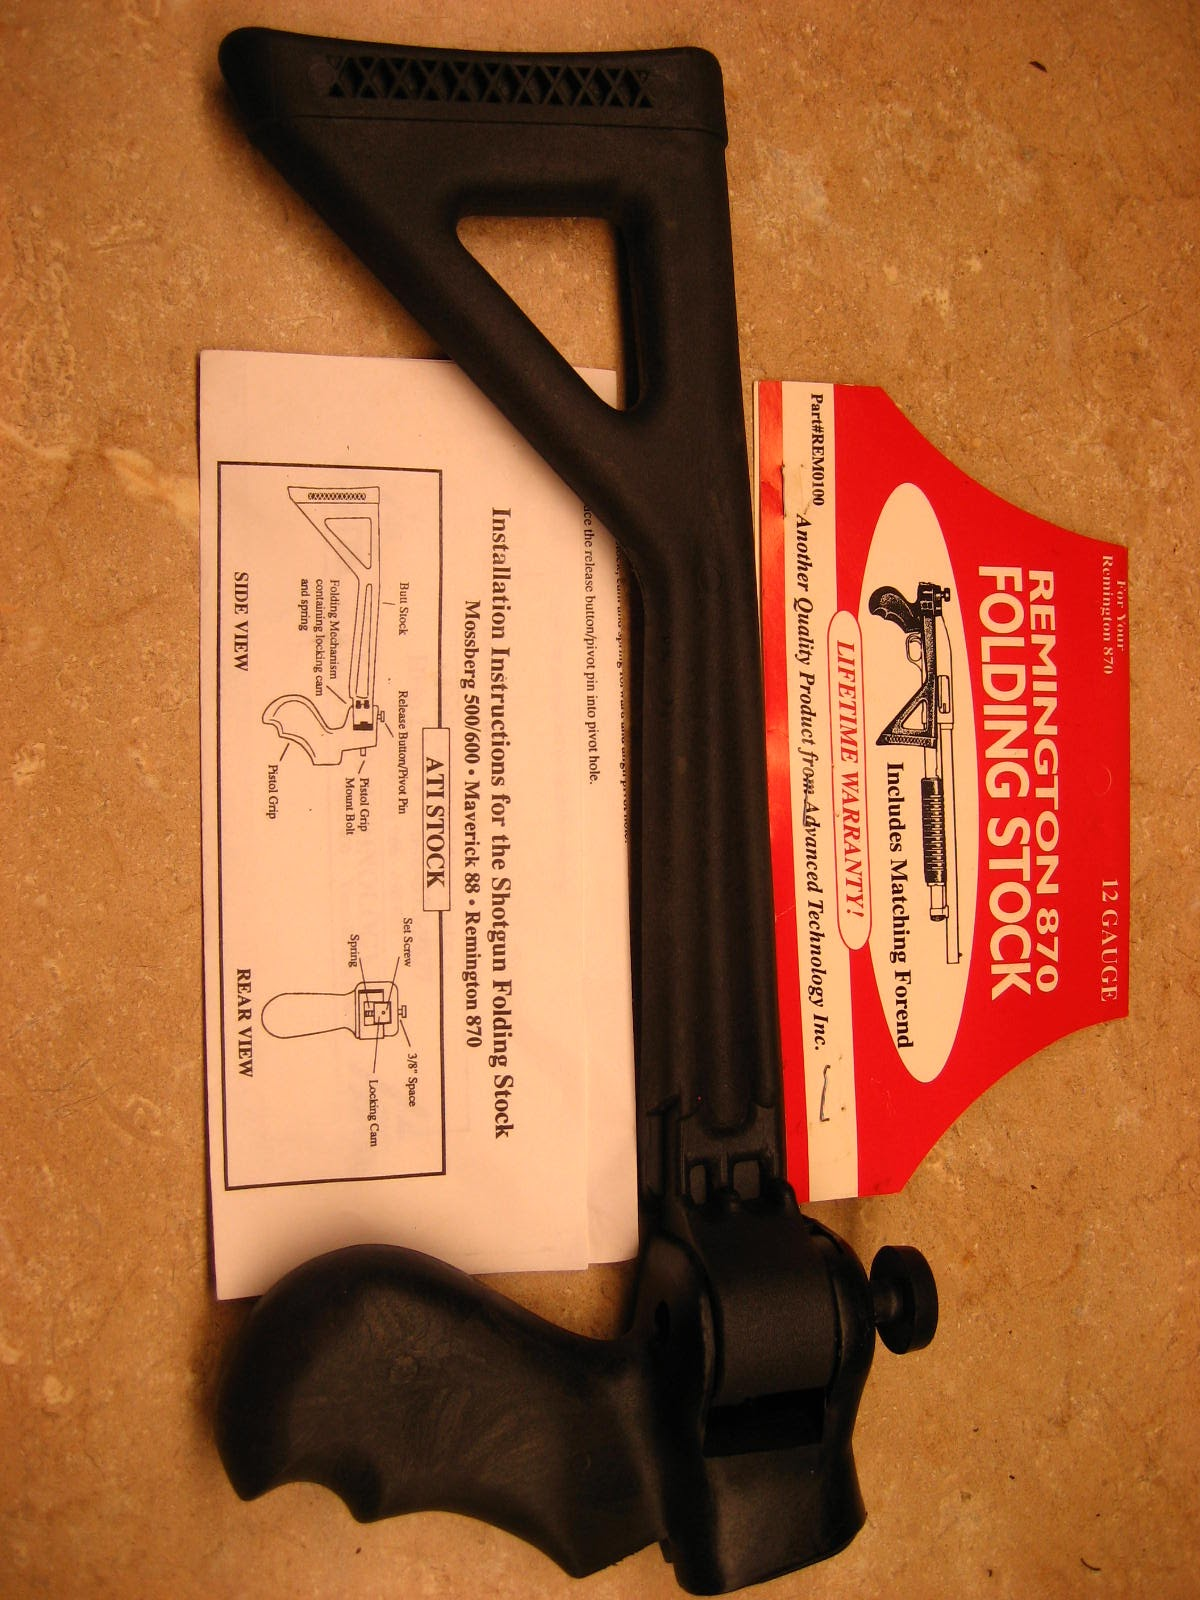 Dennel Motors Ebay Auction Photos Hosted Here Firearms